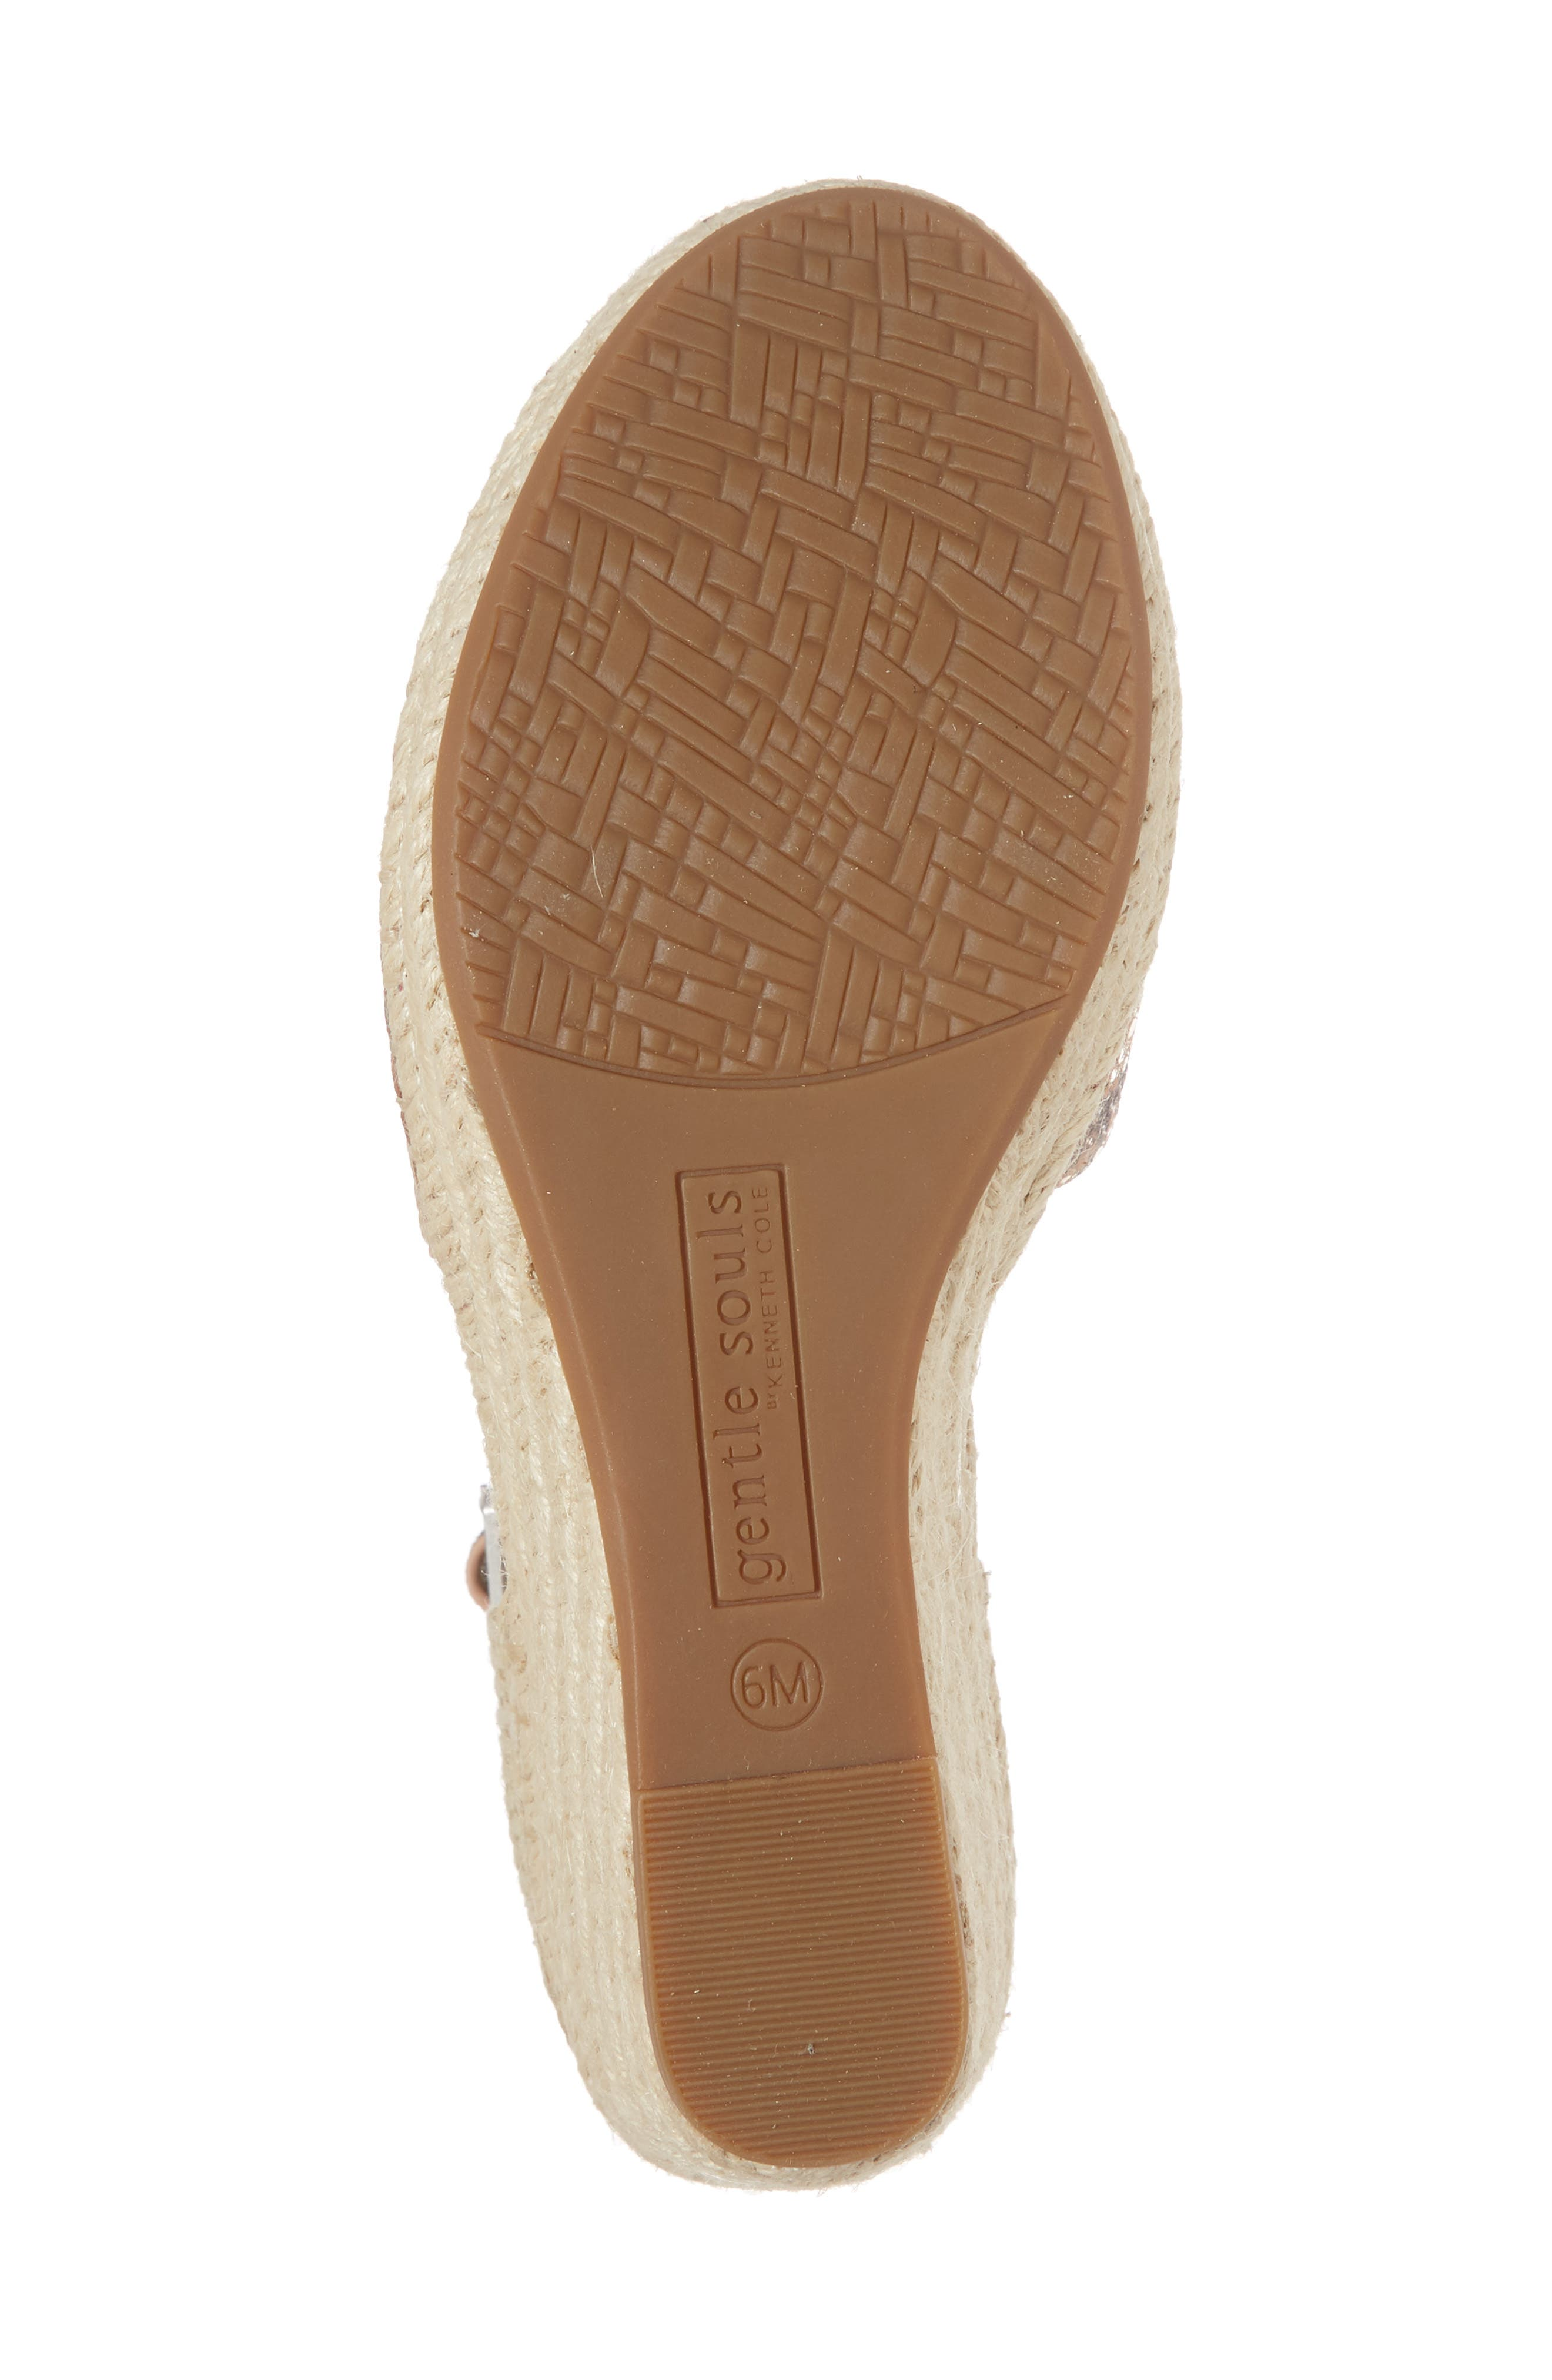 GENTLE SOULS BY KENNETH COLE, Charli Espadrille Wedge, Alternate thumbnail 6, color, ROSE METALLIC LEATHER